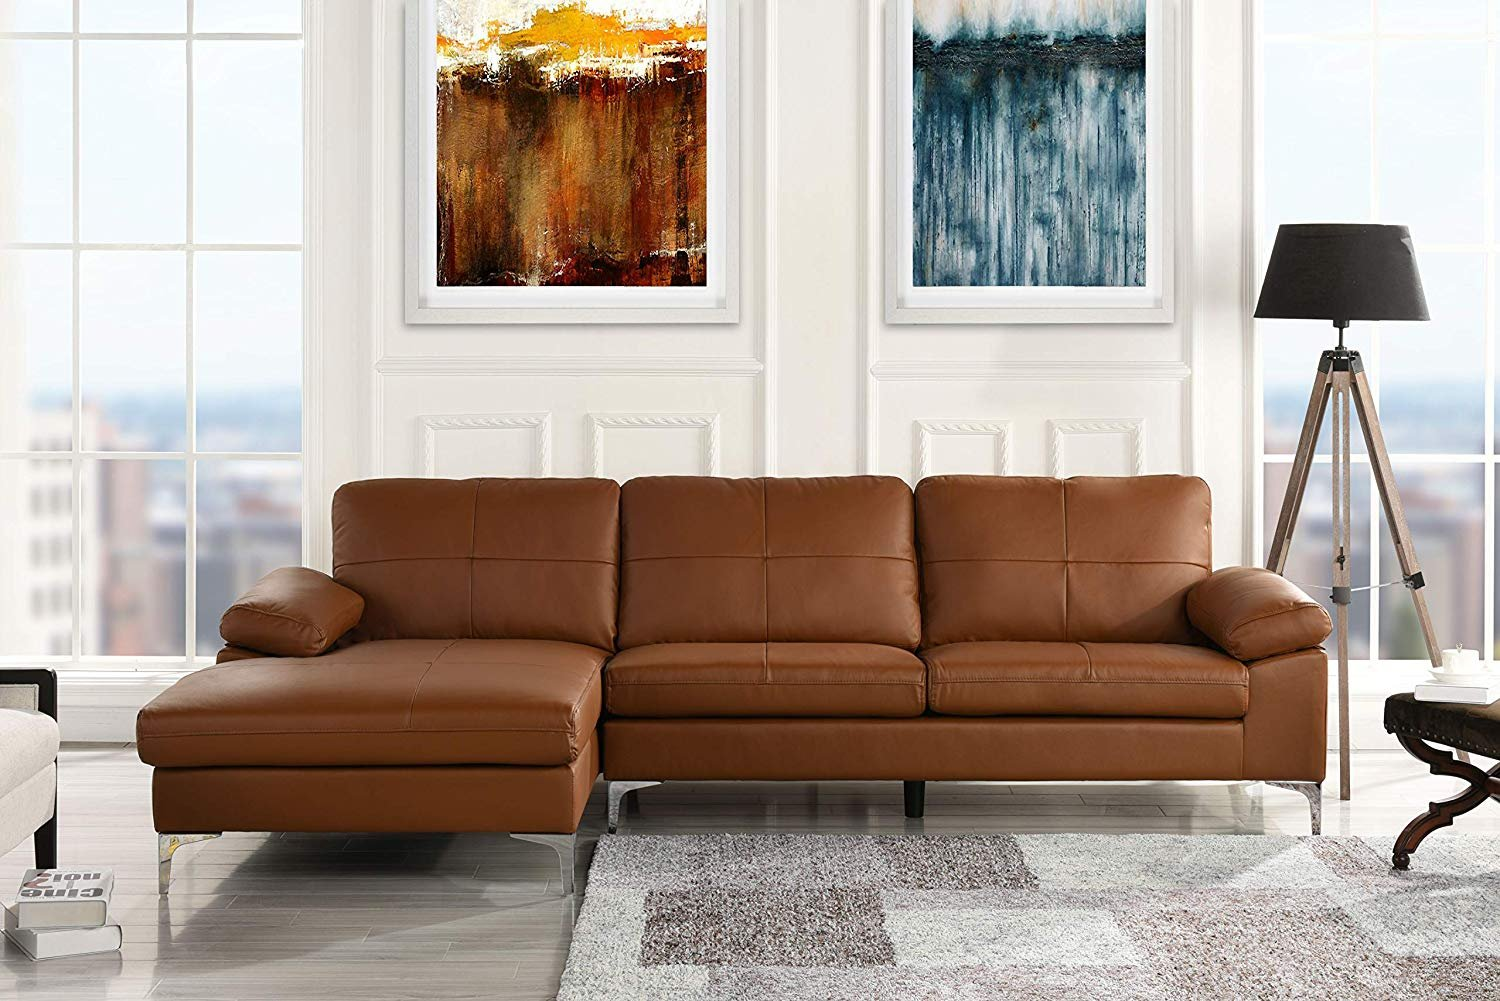 Details about Camel Leather Match Family Room Sectional Sofa, L-Shape Couch  with Left Chaise